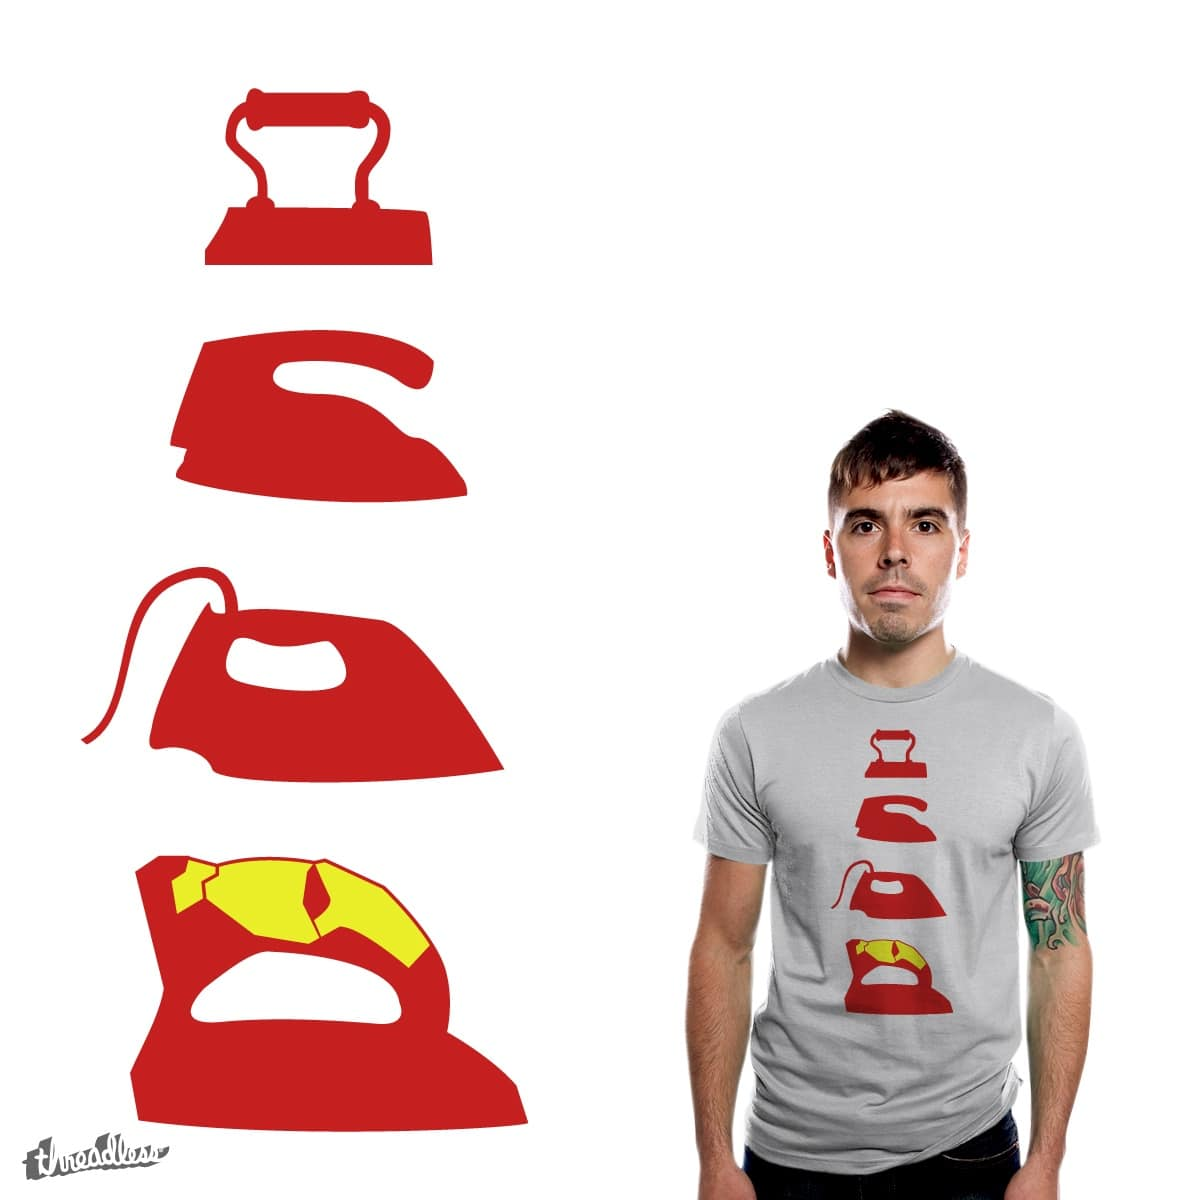 History of the Iron by Resistance on Threadless